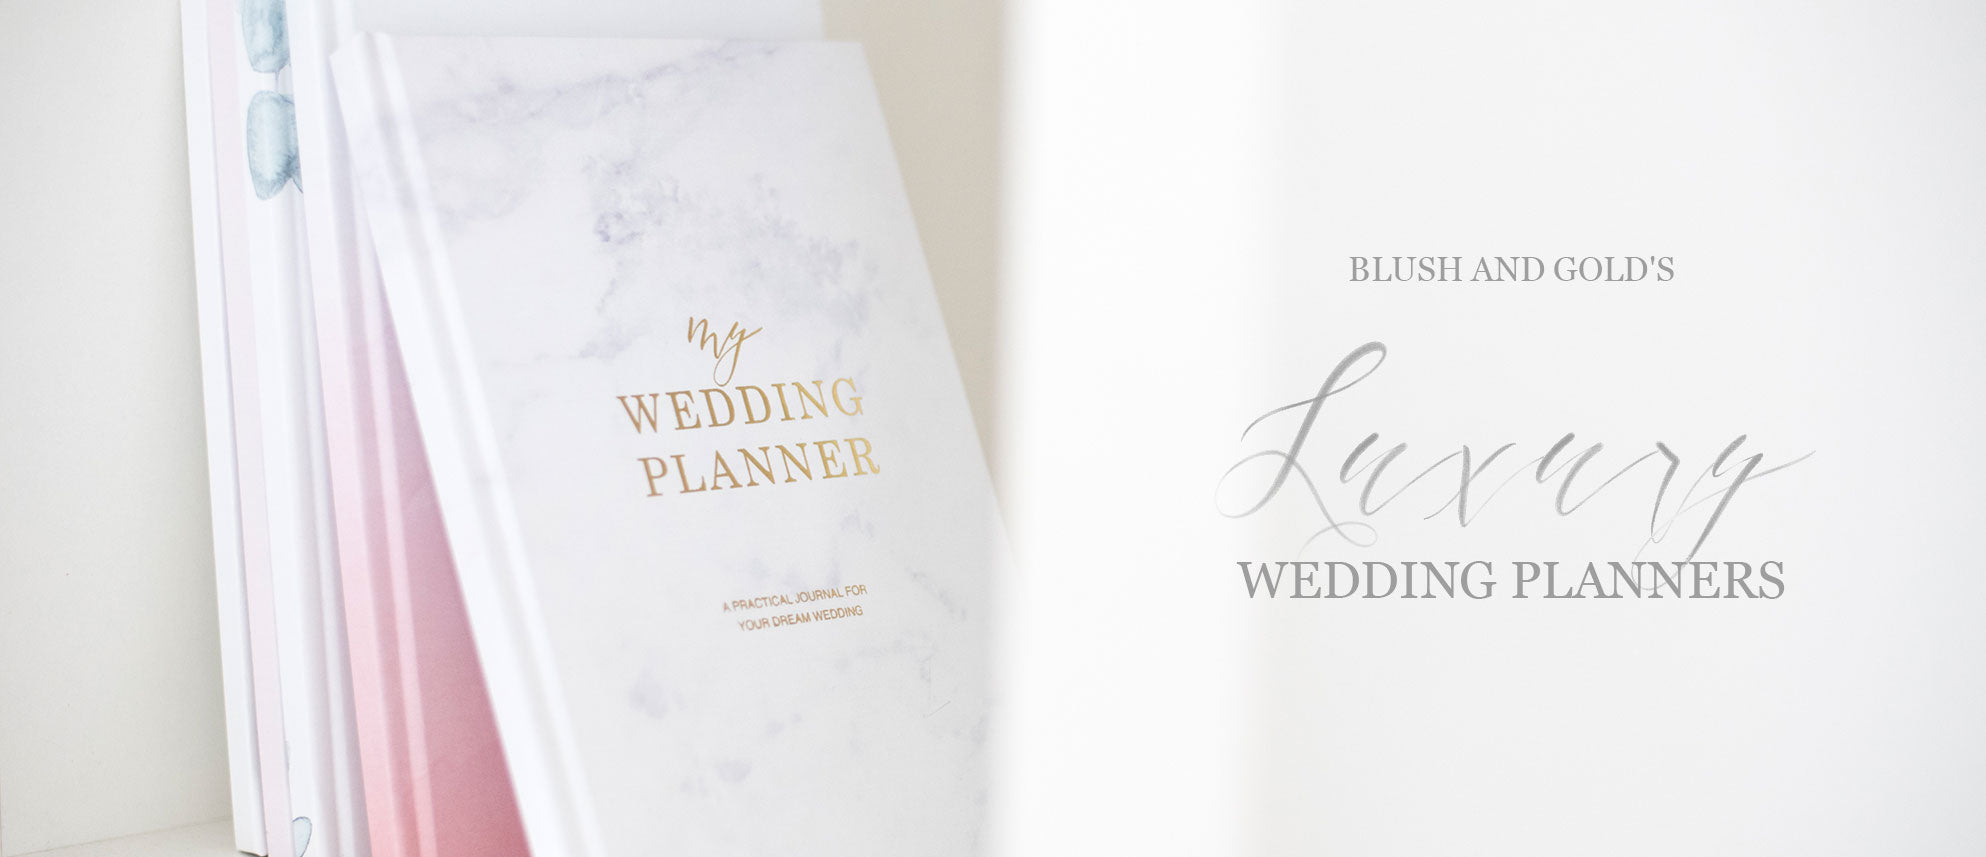 Wedding Planners Books Blush and Gold